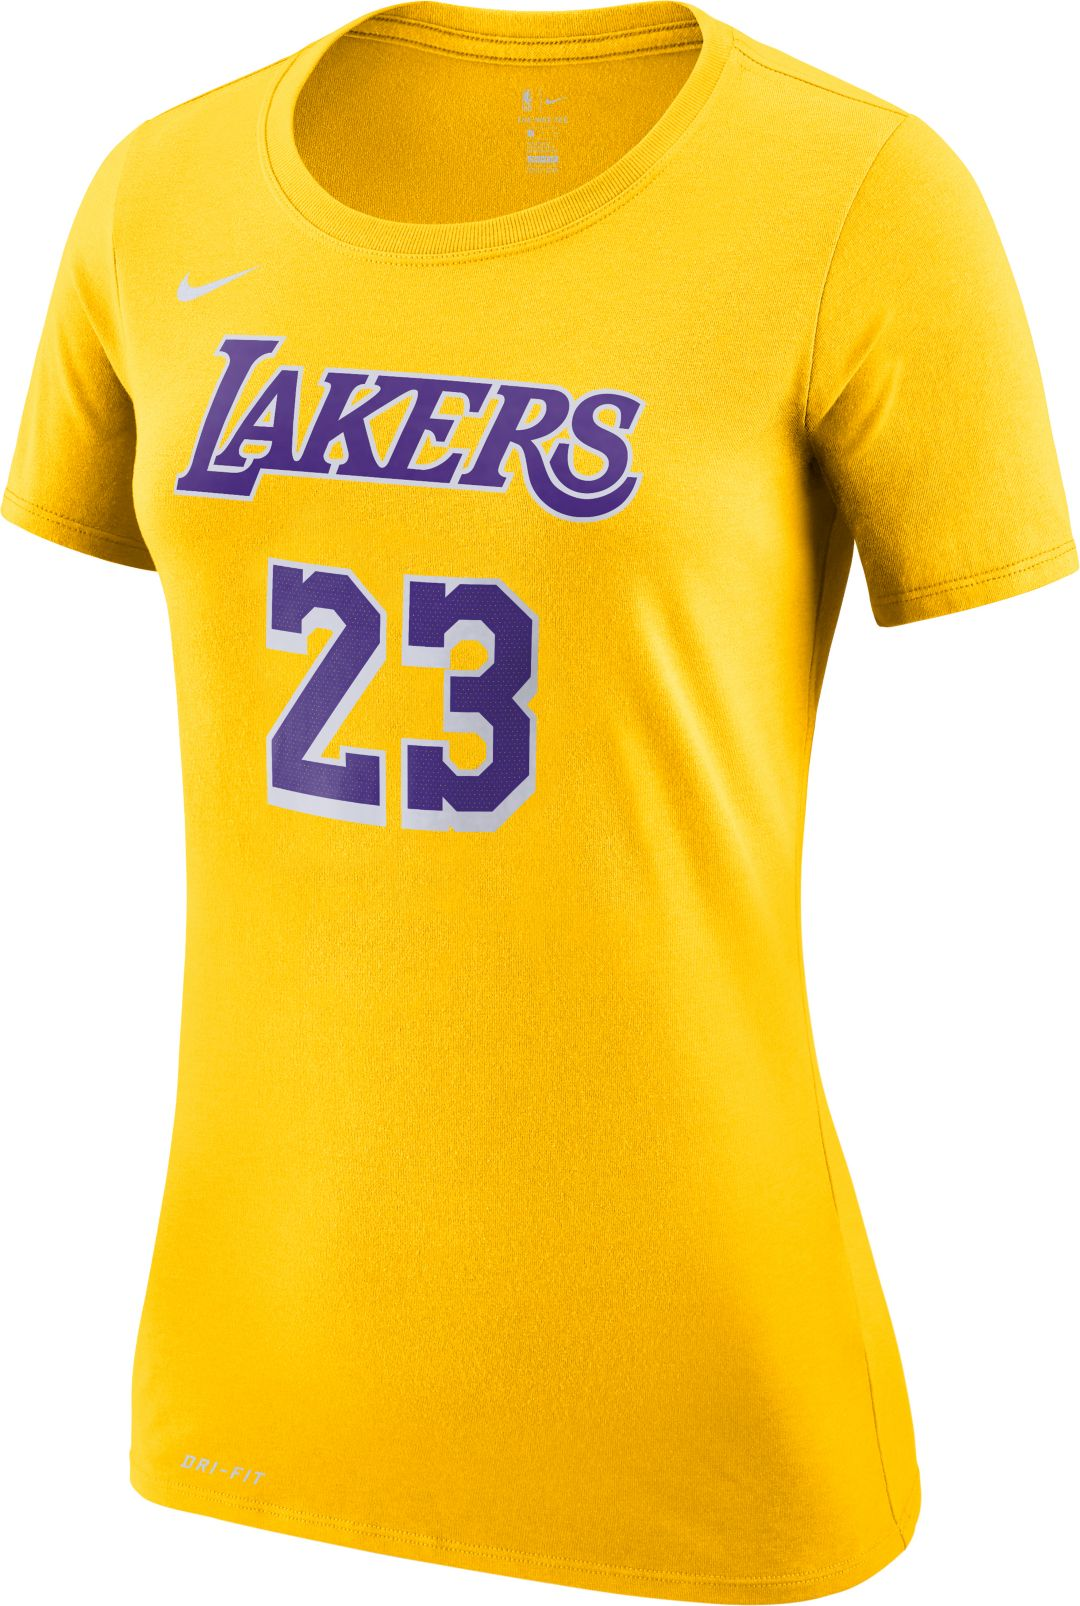 quality design 29a21 cdc0e Nike Women's Los Angeles Lakers LeBron James Dri-FIT Gold T-Shirt